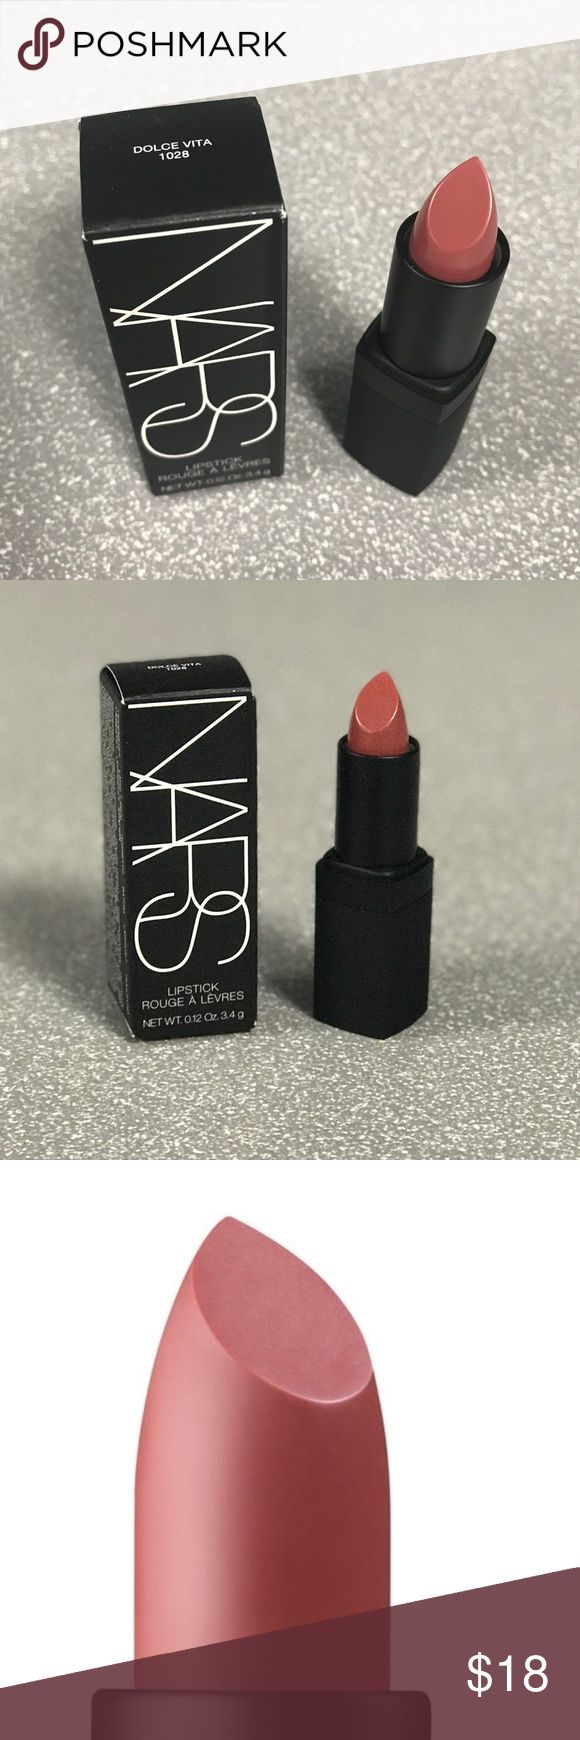 NARS Sheer Lipstick - Dolce Vita Sheer Lipstick - Dolce Vita (Dusty Rose). A beautifully sheer formula infused with ingredients to improve the condition of the lips. Sheer, long lasting color pigments have been suspended in this translucent formula to provide a sophisticated shine.  Lightweight formula glides on smoothly Lush shade range Patented blend of conditioners and antioxidants hydrate, nourish and protect lips NARS Makeup Lipstick